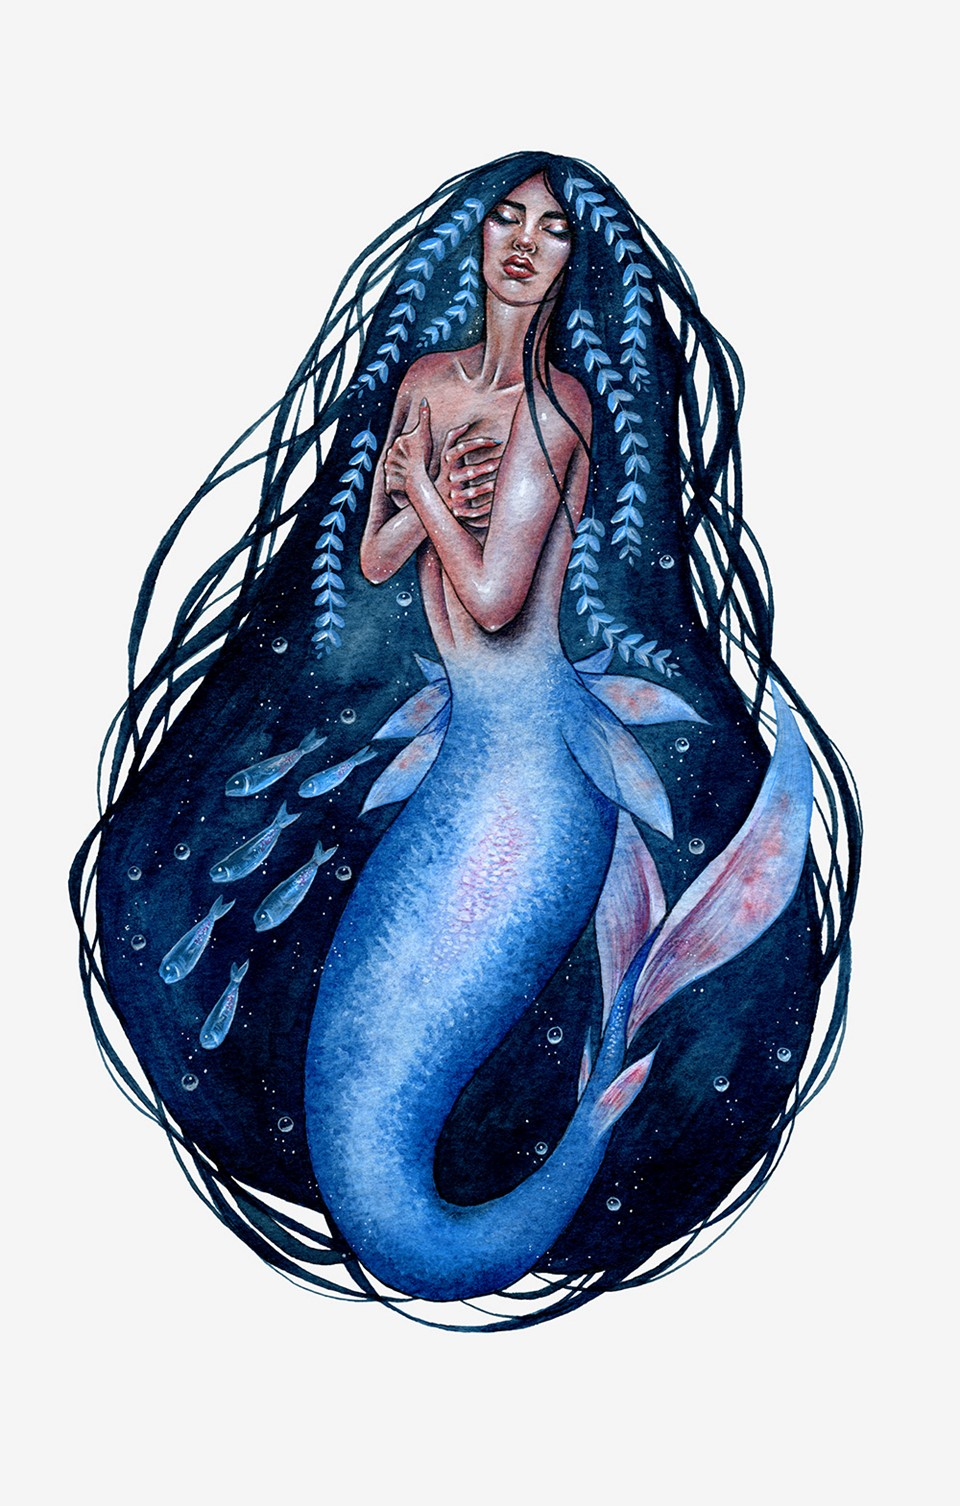 a mermaid illustration by artist Holly Khraibani